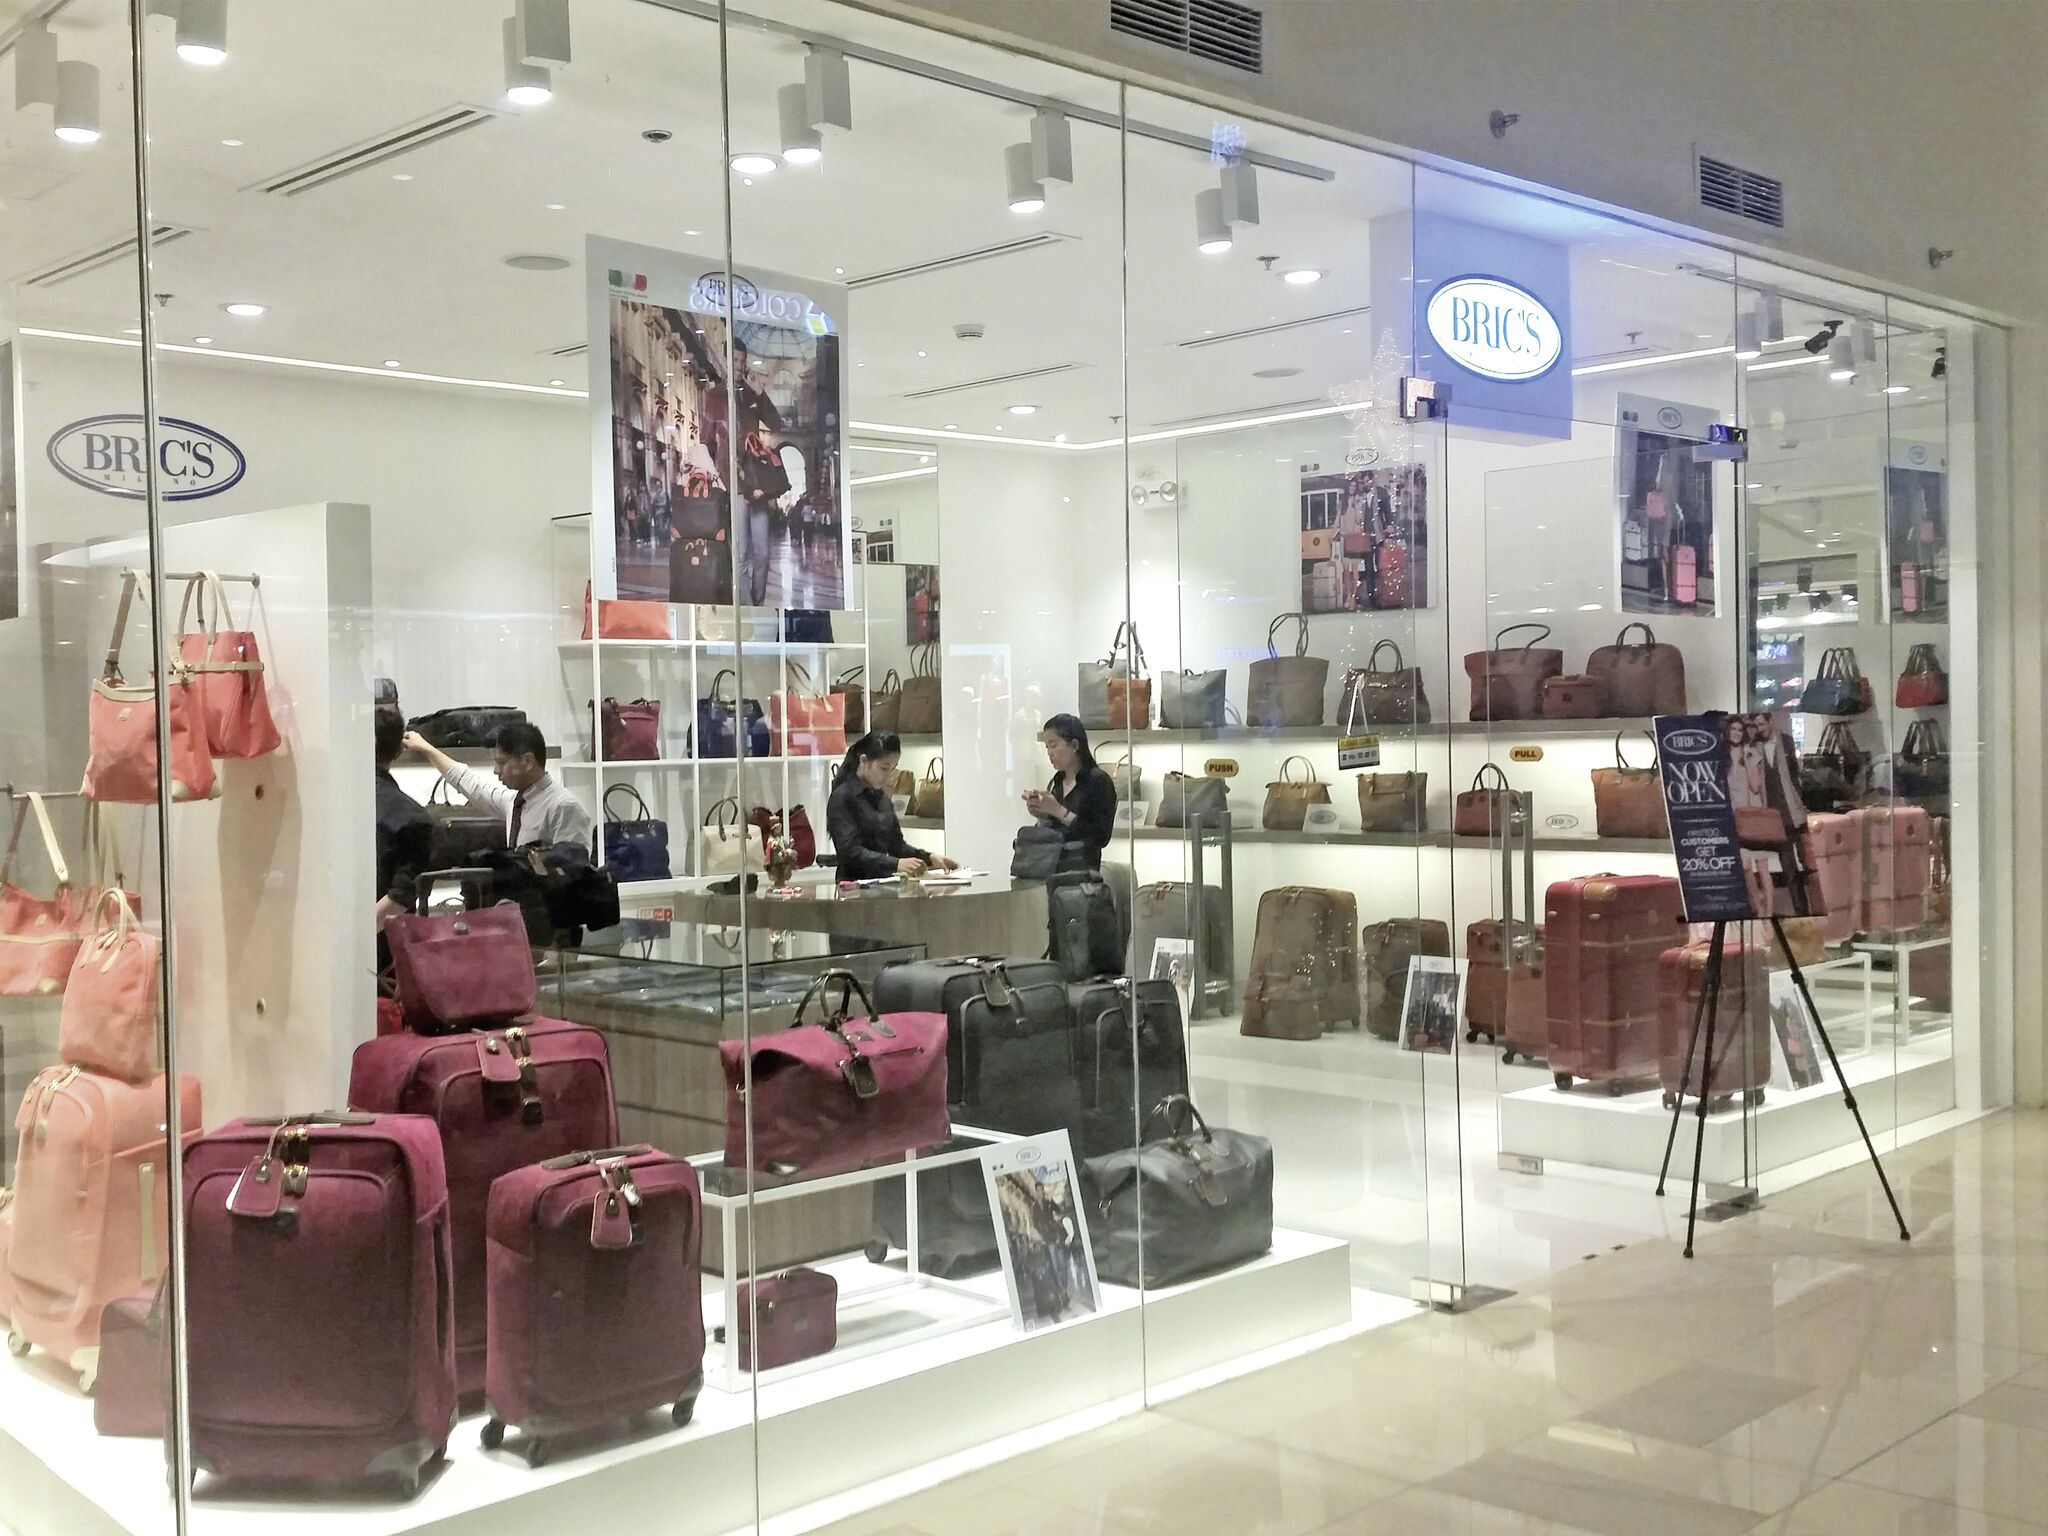 BRIC'S Travel Bag Store